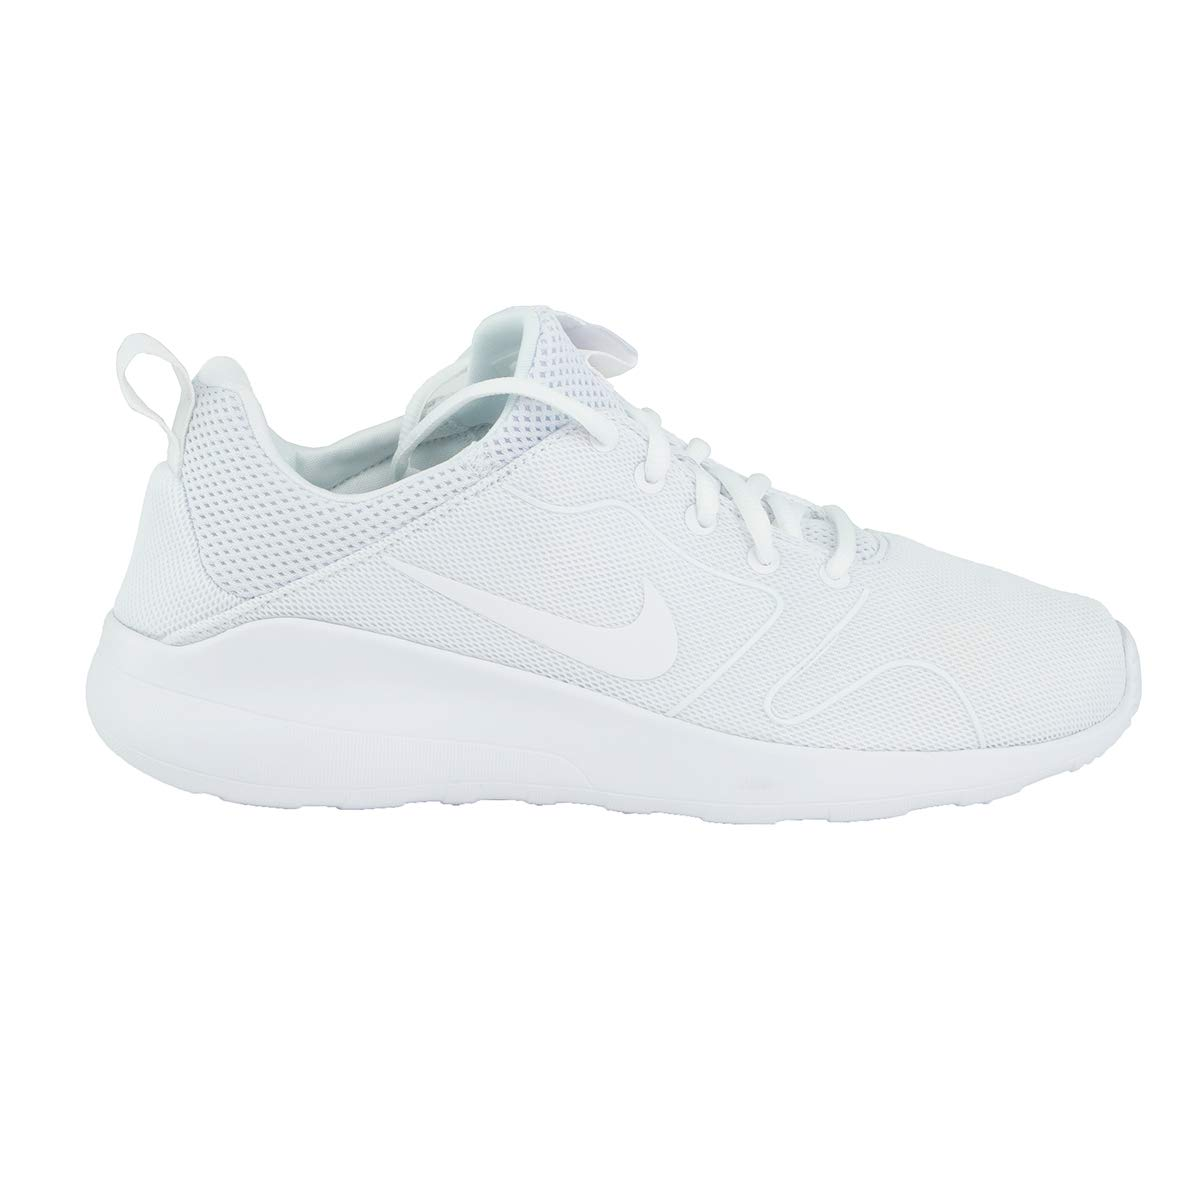 buy popular 23c75 f1980 Galleon - Nike Men s Kaishi 2.0 White Running Shoe - 11 D(M) US